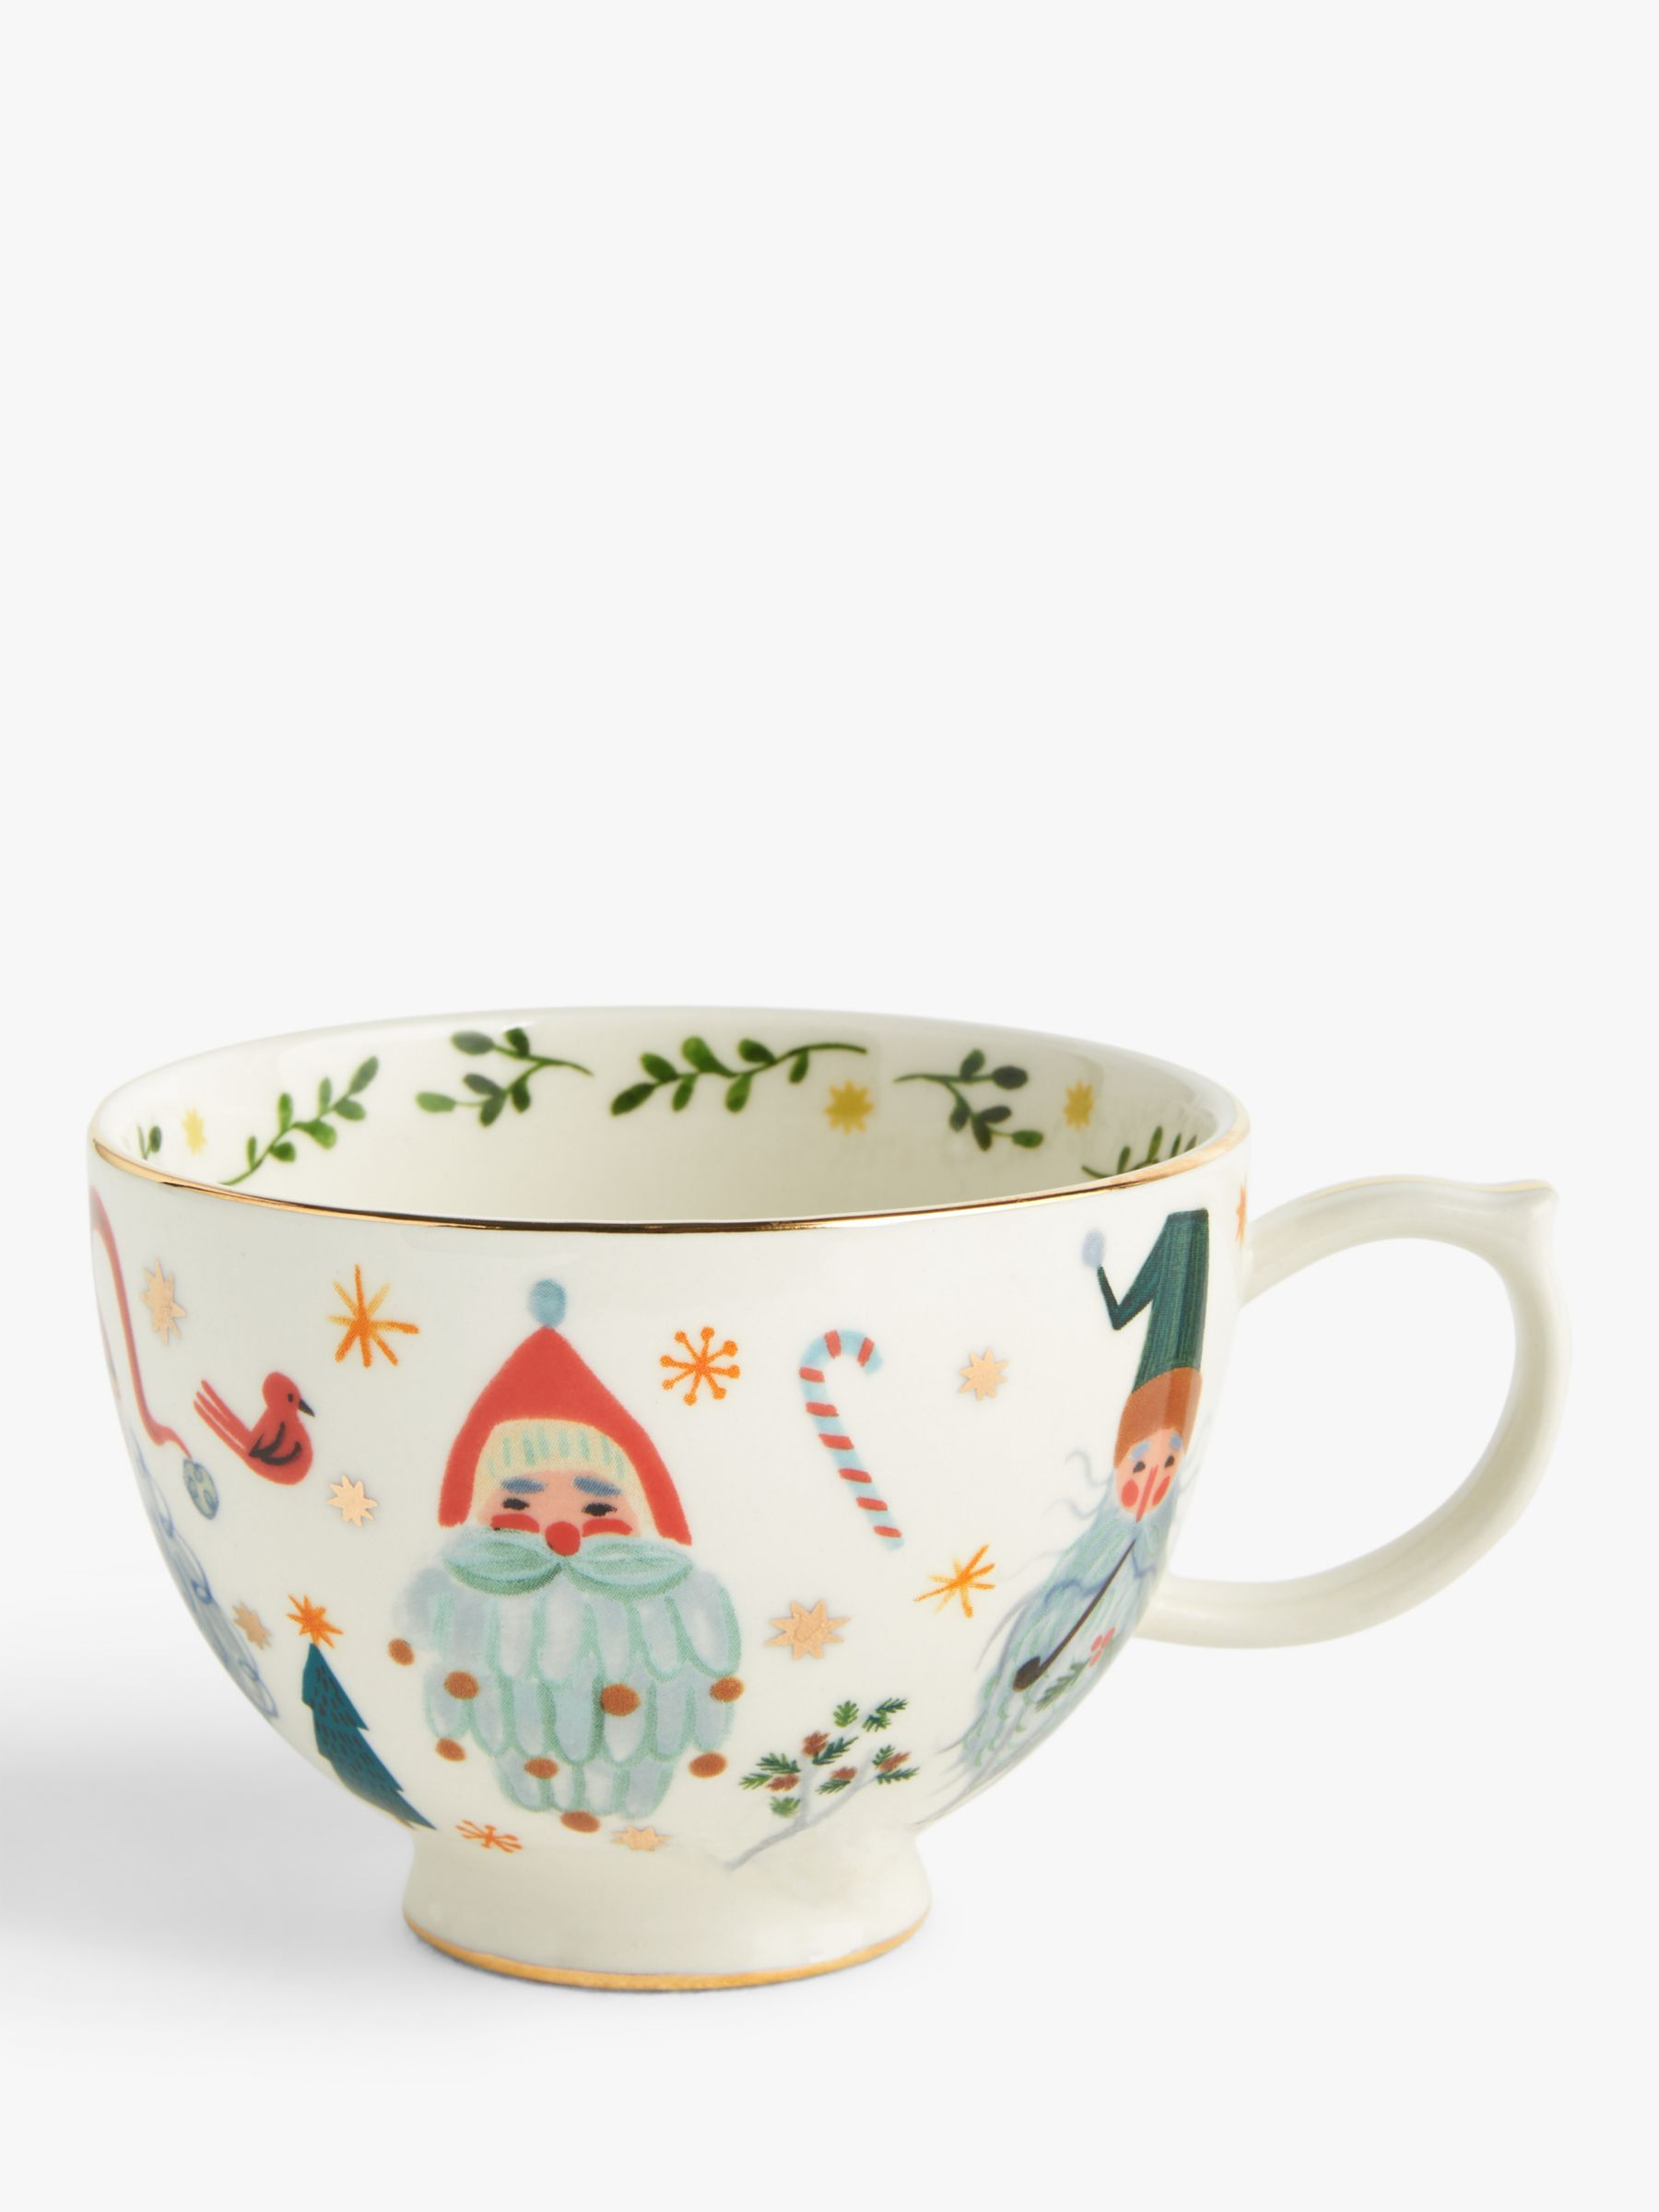 Anthropologie Christmas Santa Mug 384ml Multi At John Lewis Partners